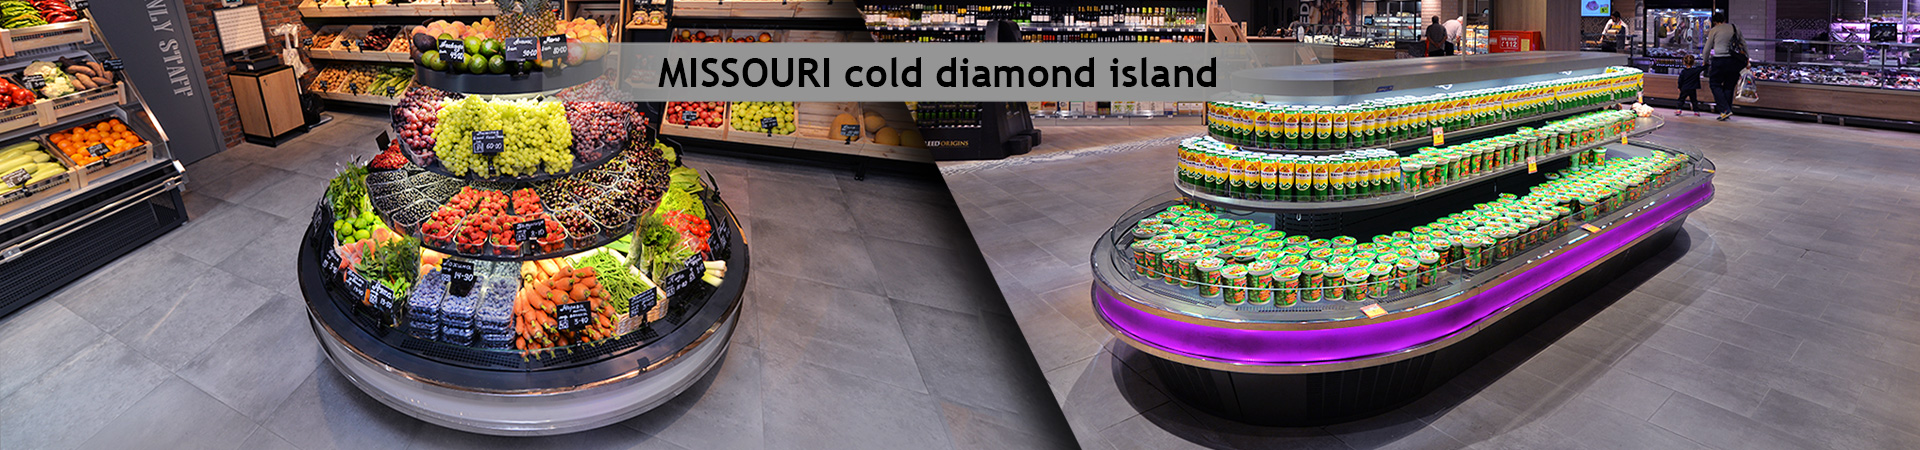 Витрины Missouri cold diamond island